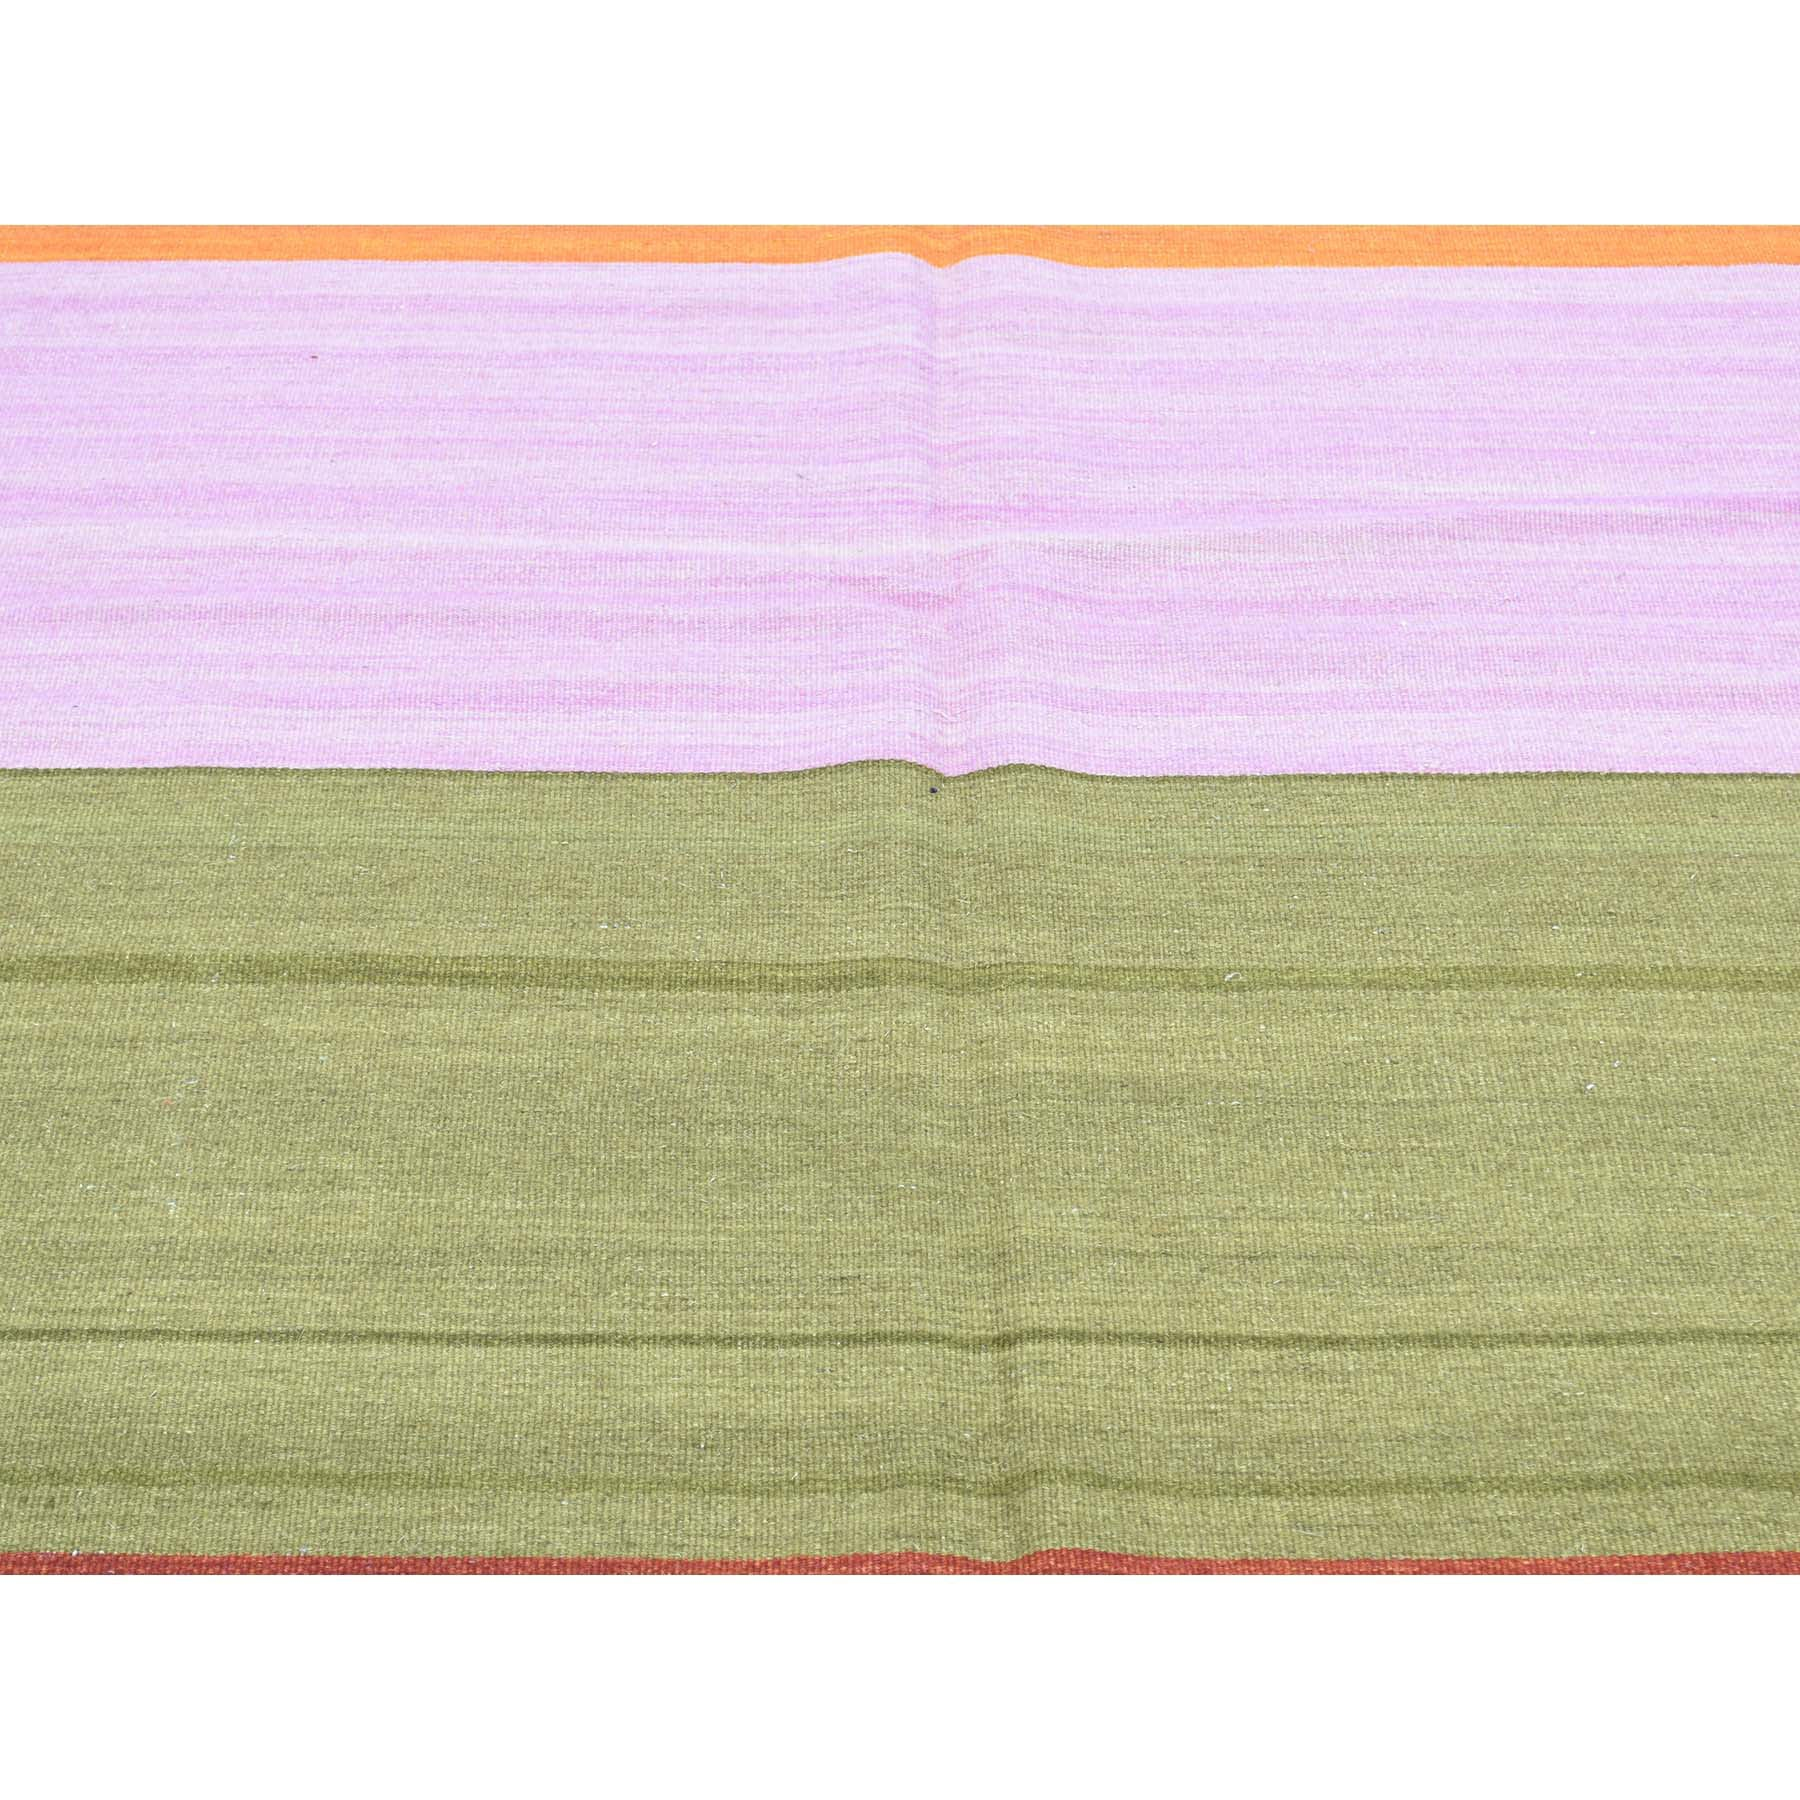 "Handmade Flat Weave Rectangle Rug > Design# SH31896 > Size: 10'-0"" x 14'-8"" [ONLINE ONLY]"